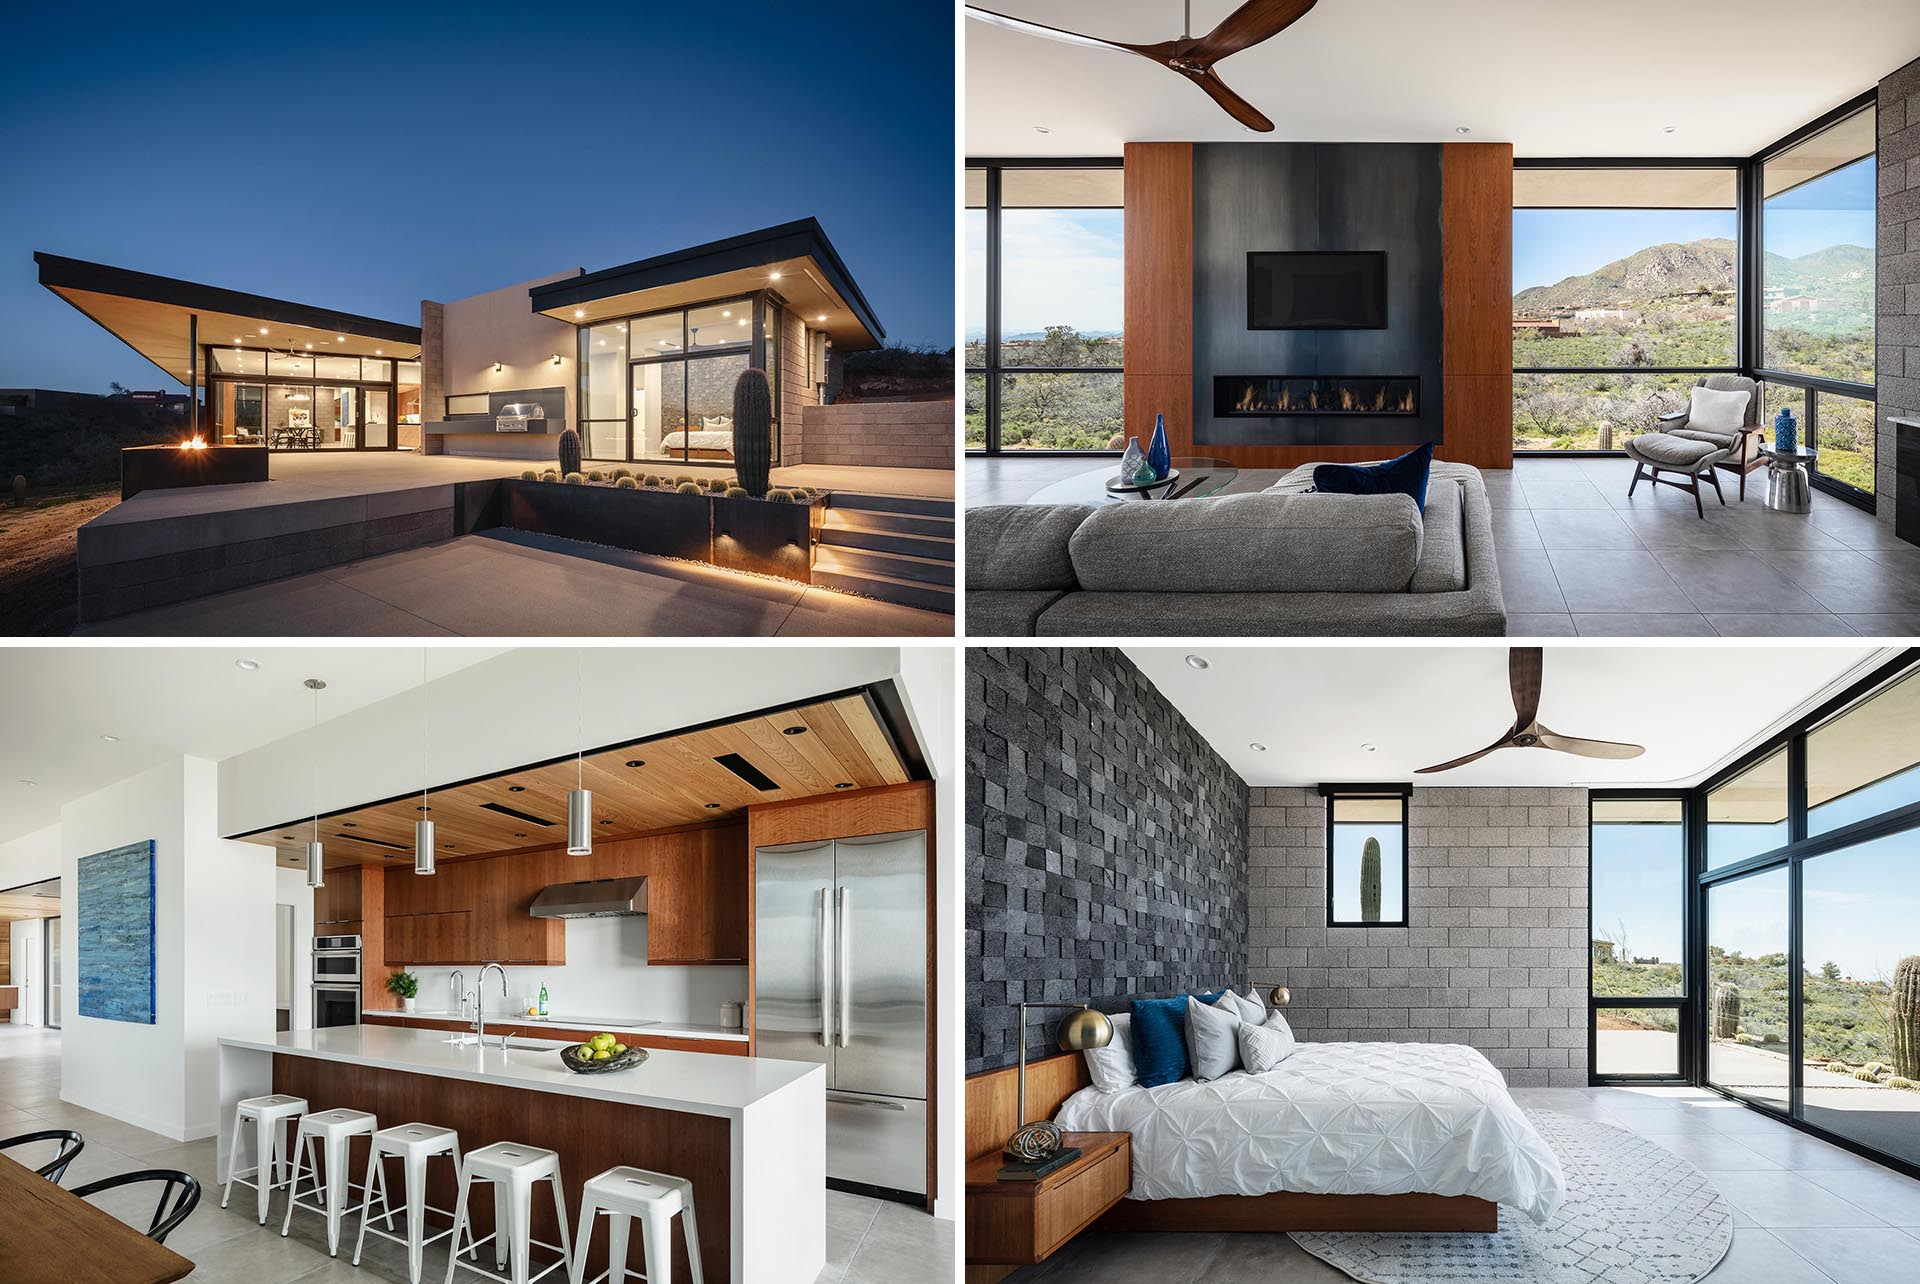 Views Of The Surrounding Desert Were A Design Priority At This Home In Arizona